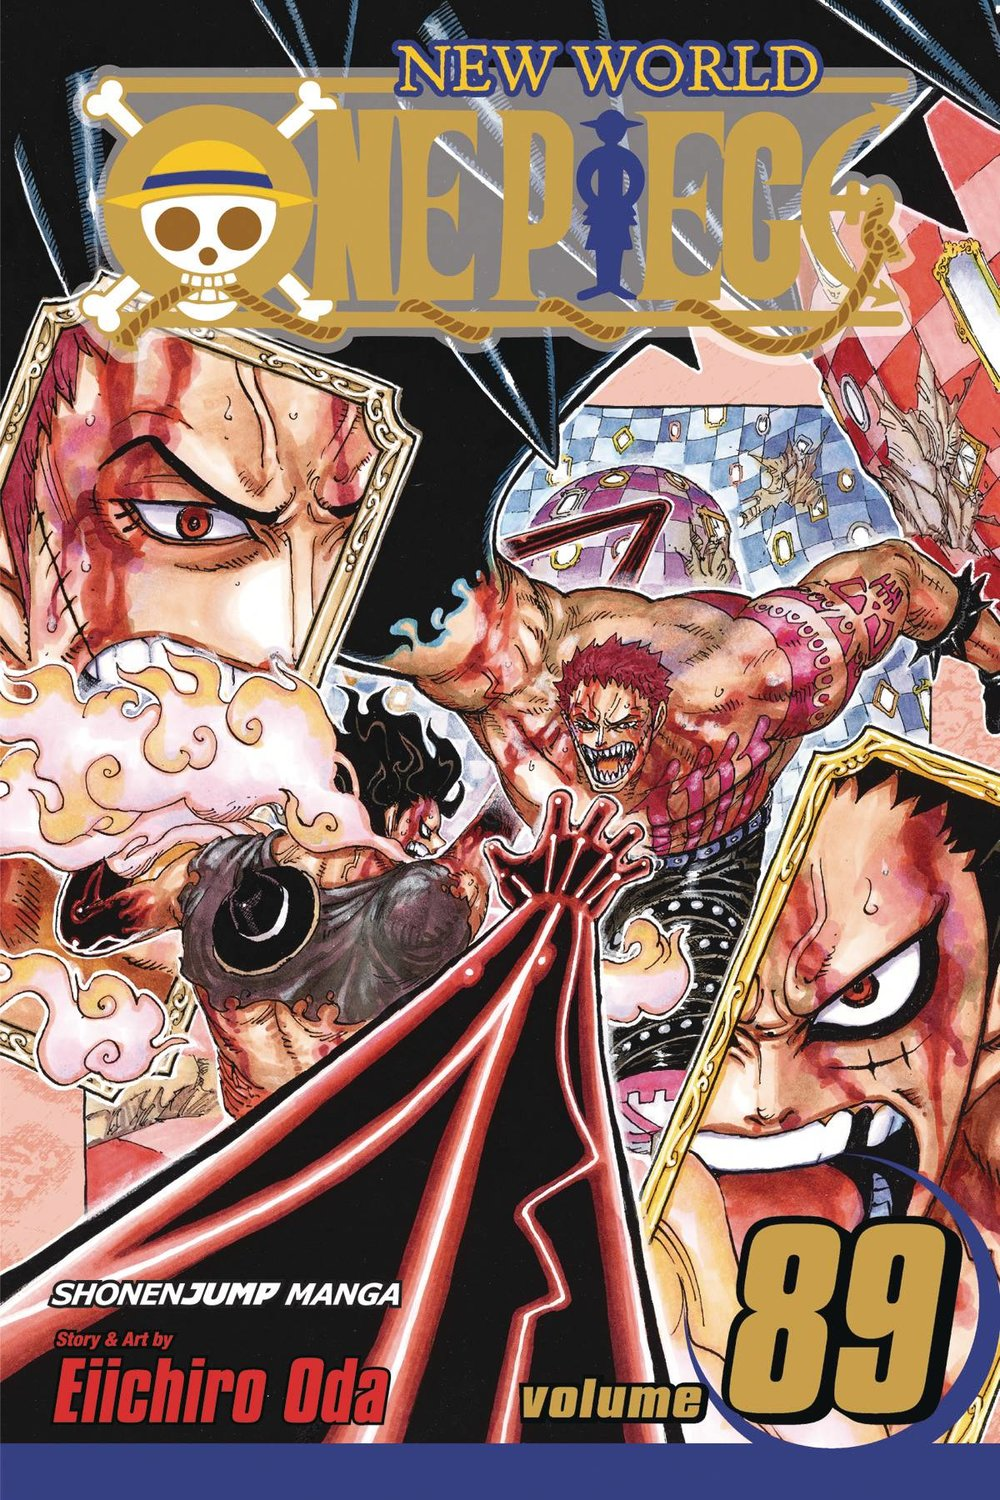 ONE PIECE GN 89.jpg